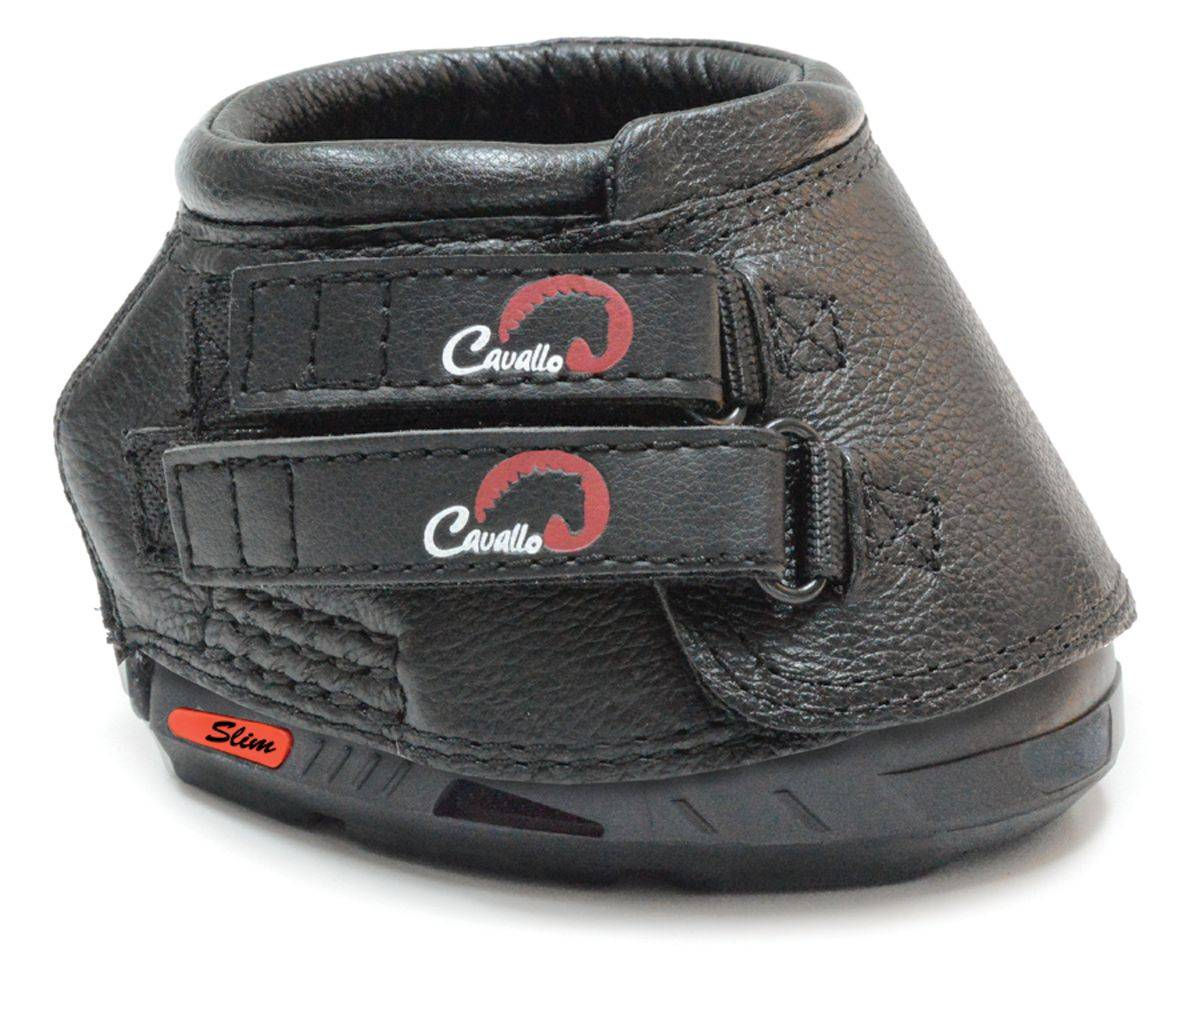 Cavallo Sport Regular Hoof Boots